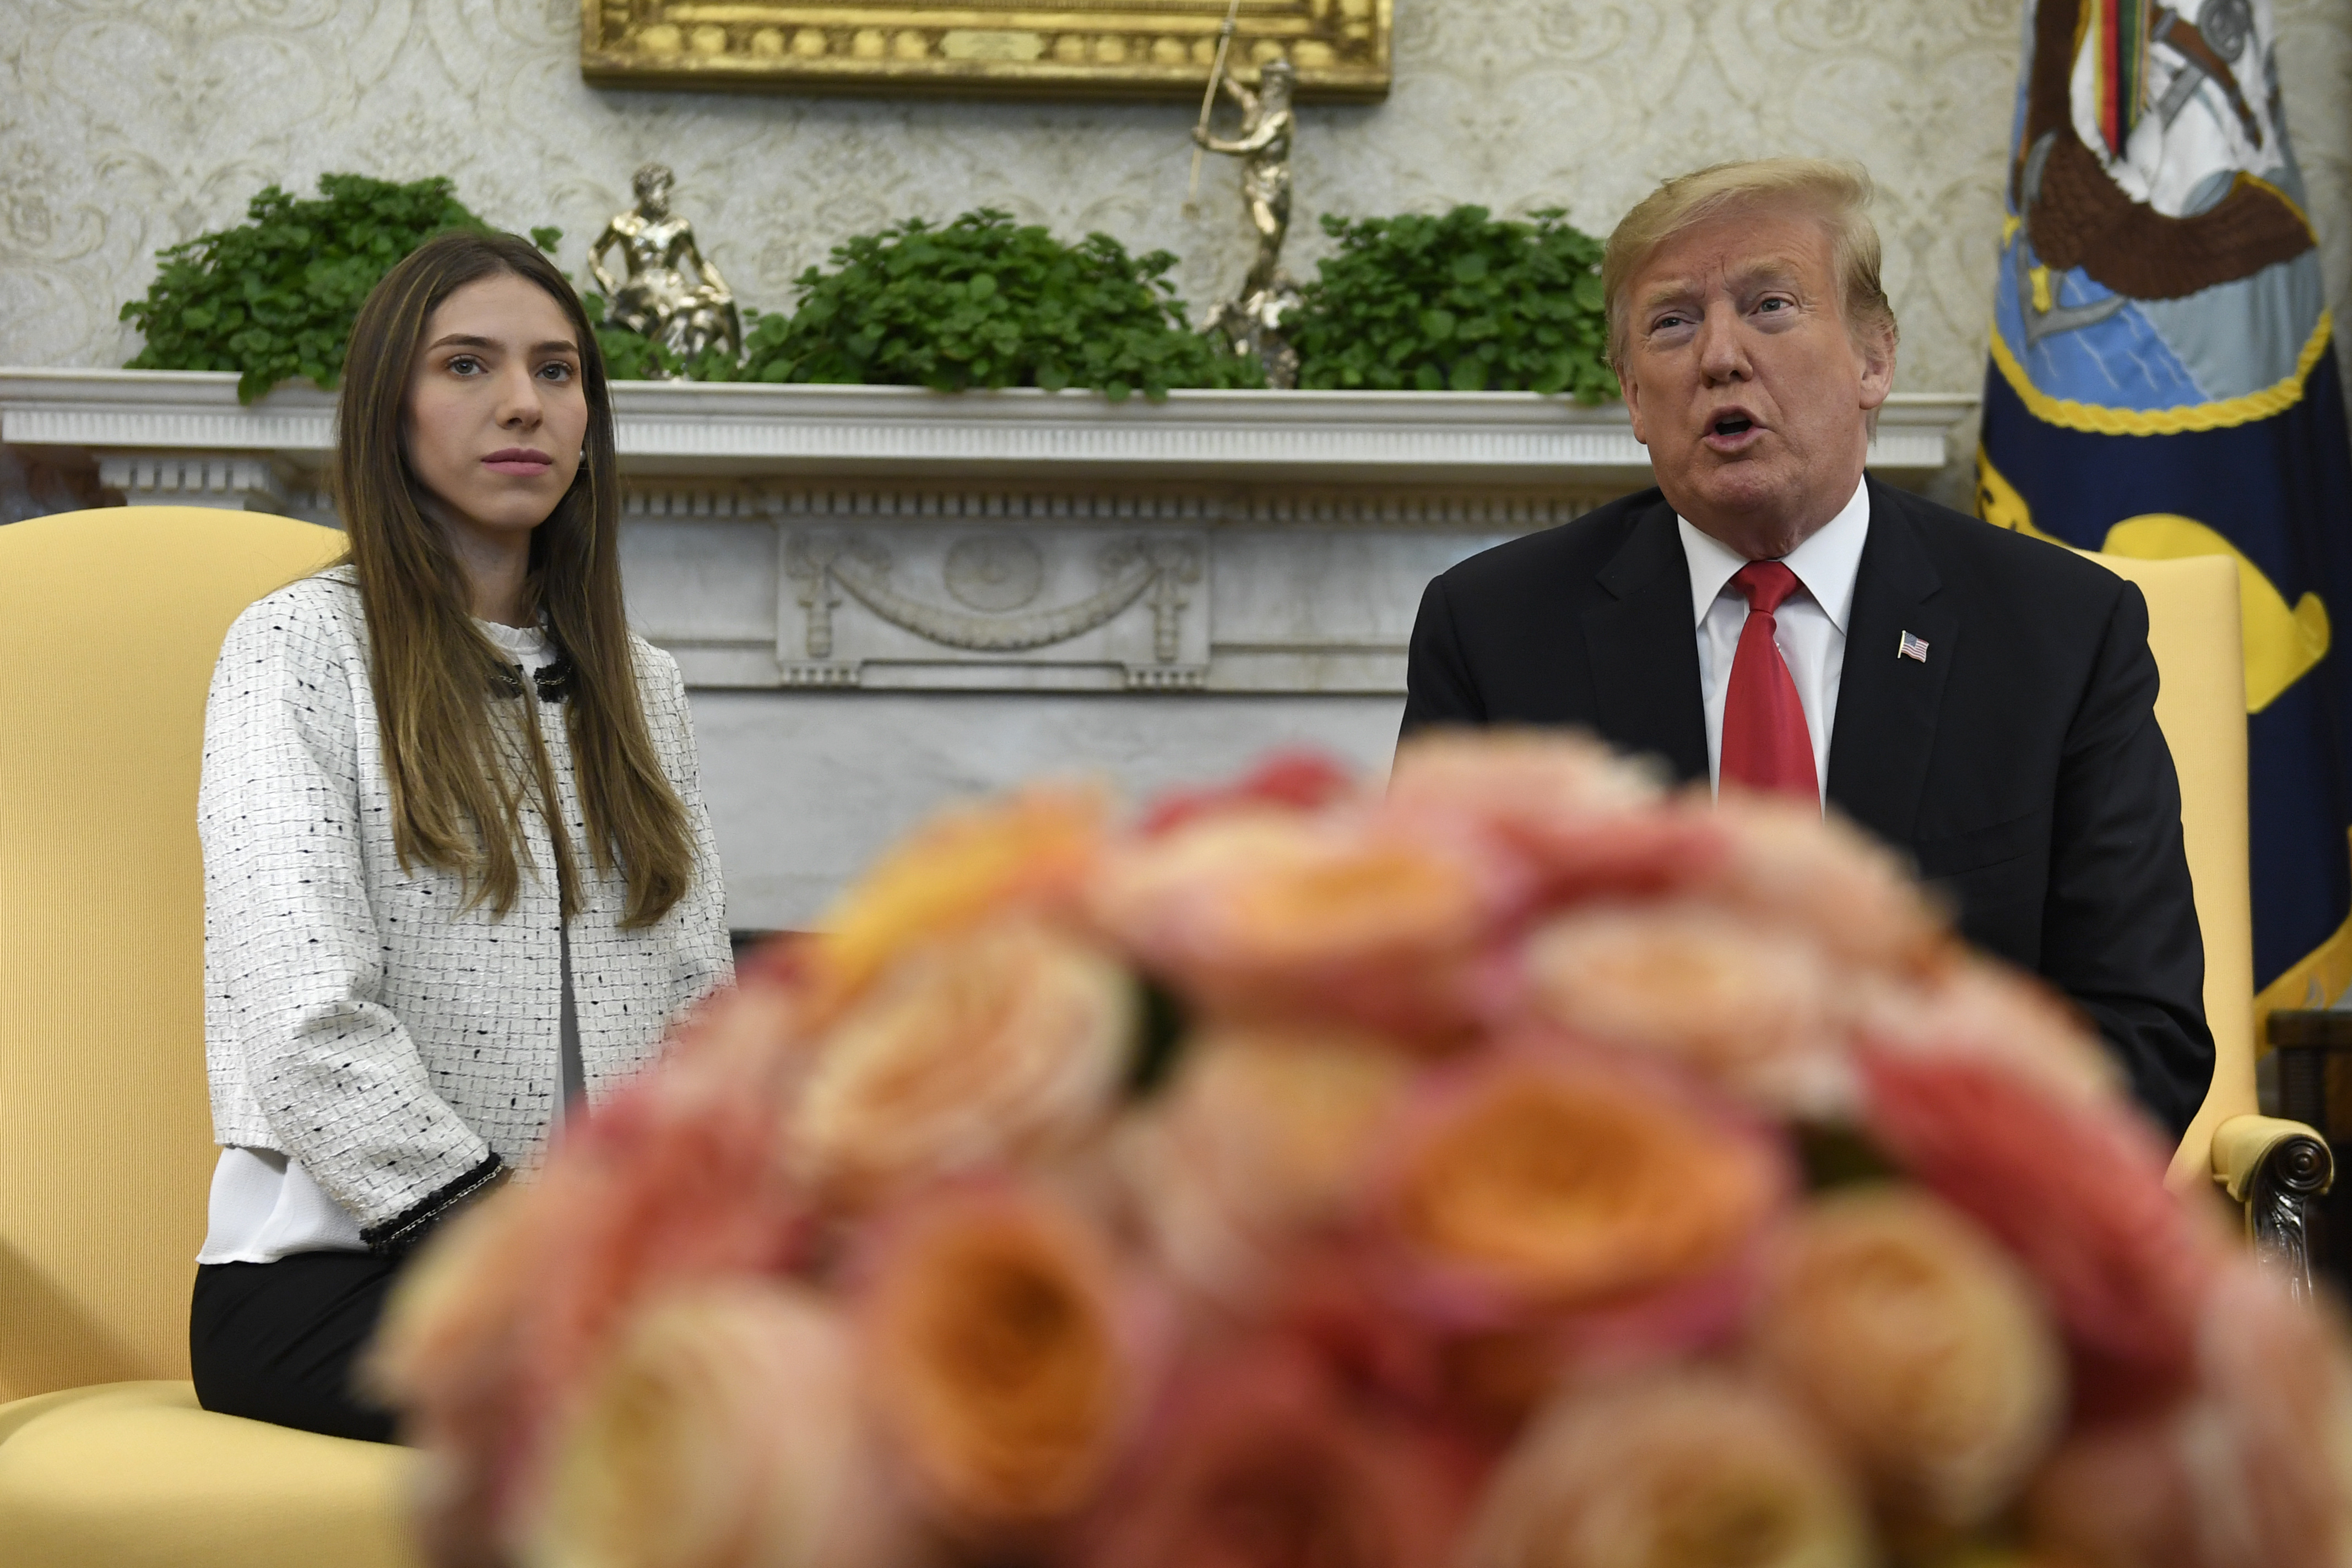 President Donald Trump, right, speaks during a meeting with Fabiana Rosales, left, a Venezuelan activist who is the wife of Venezuelan opposition leader Juan Guaido, in the Oval Office of the White House in Washington, Wednesday, March 27, 2019. (AP Photo/Susan Walsh)